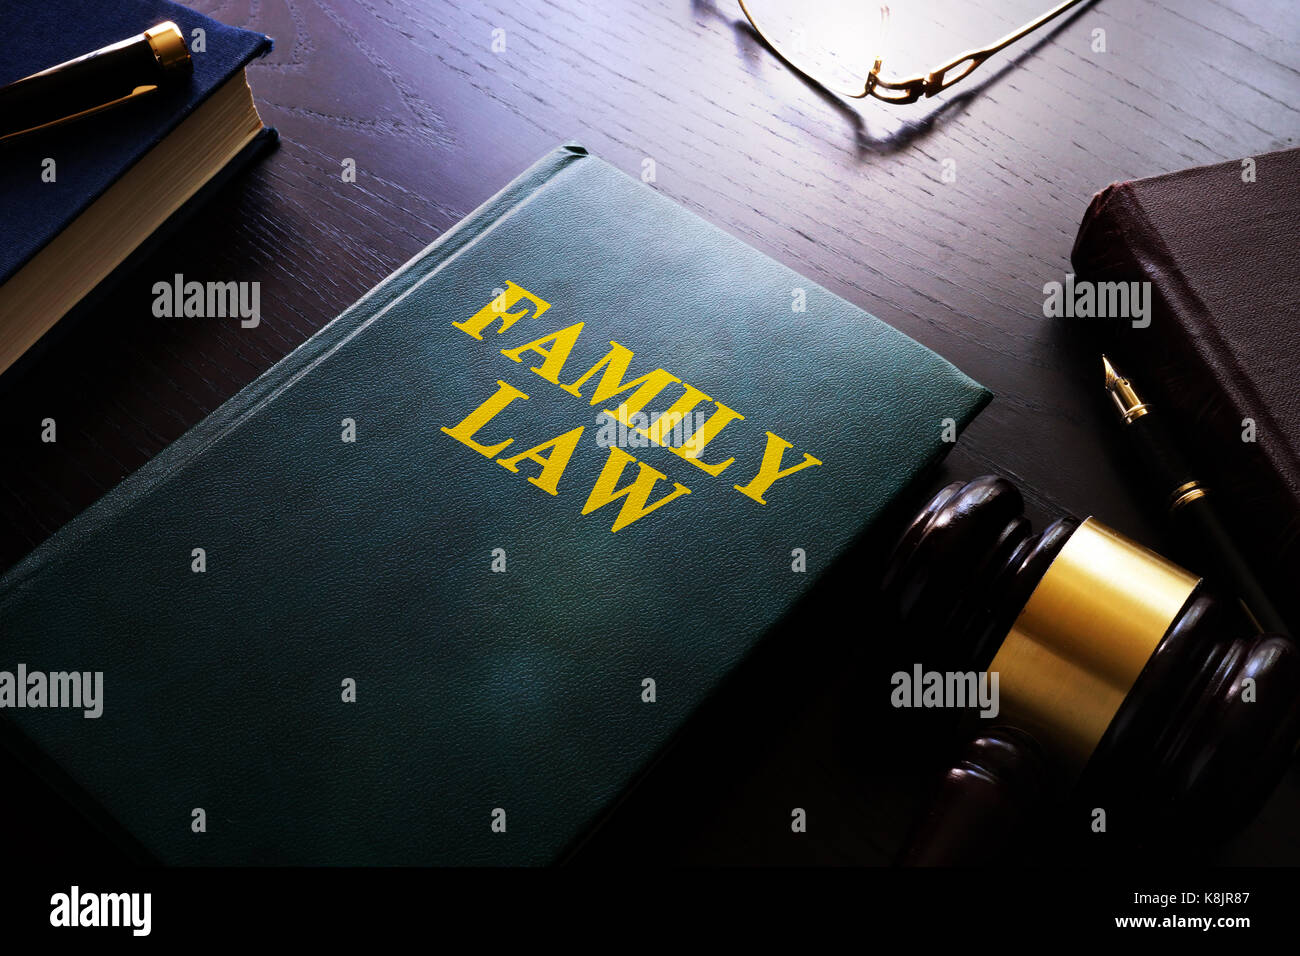 Family law on a table. Child custody and divorce concept. - Stock Image